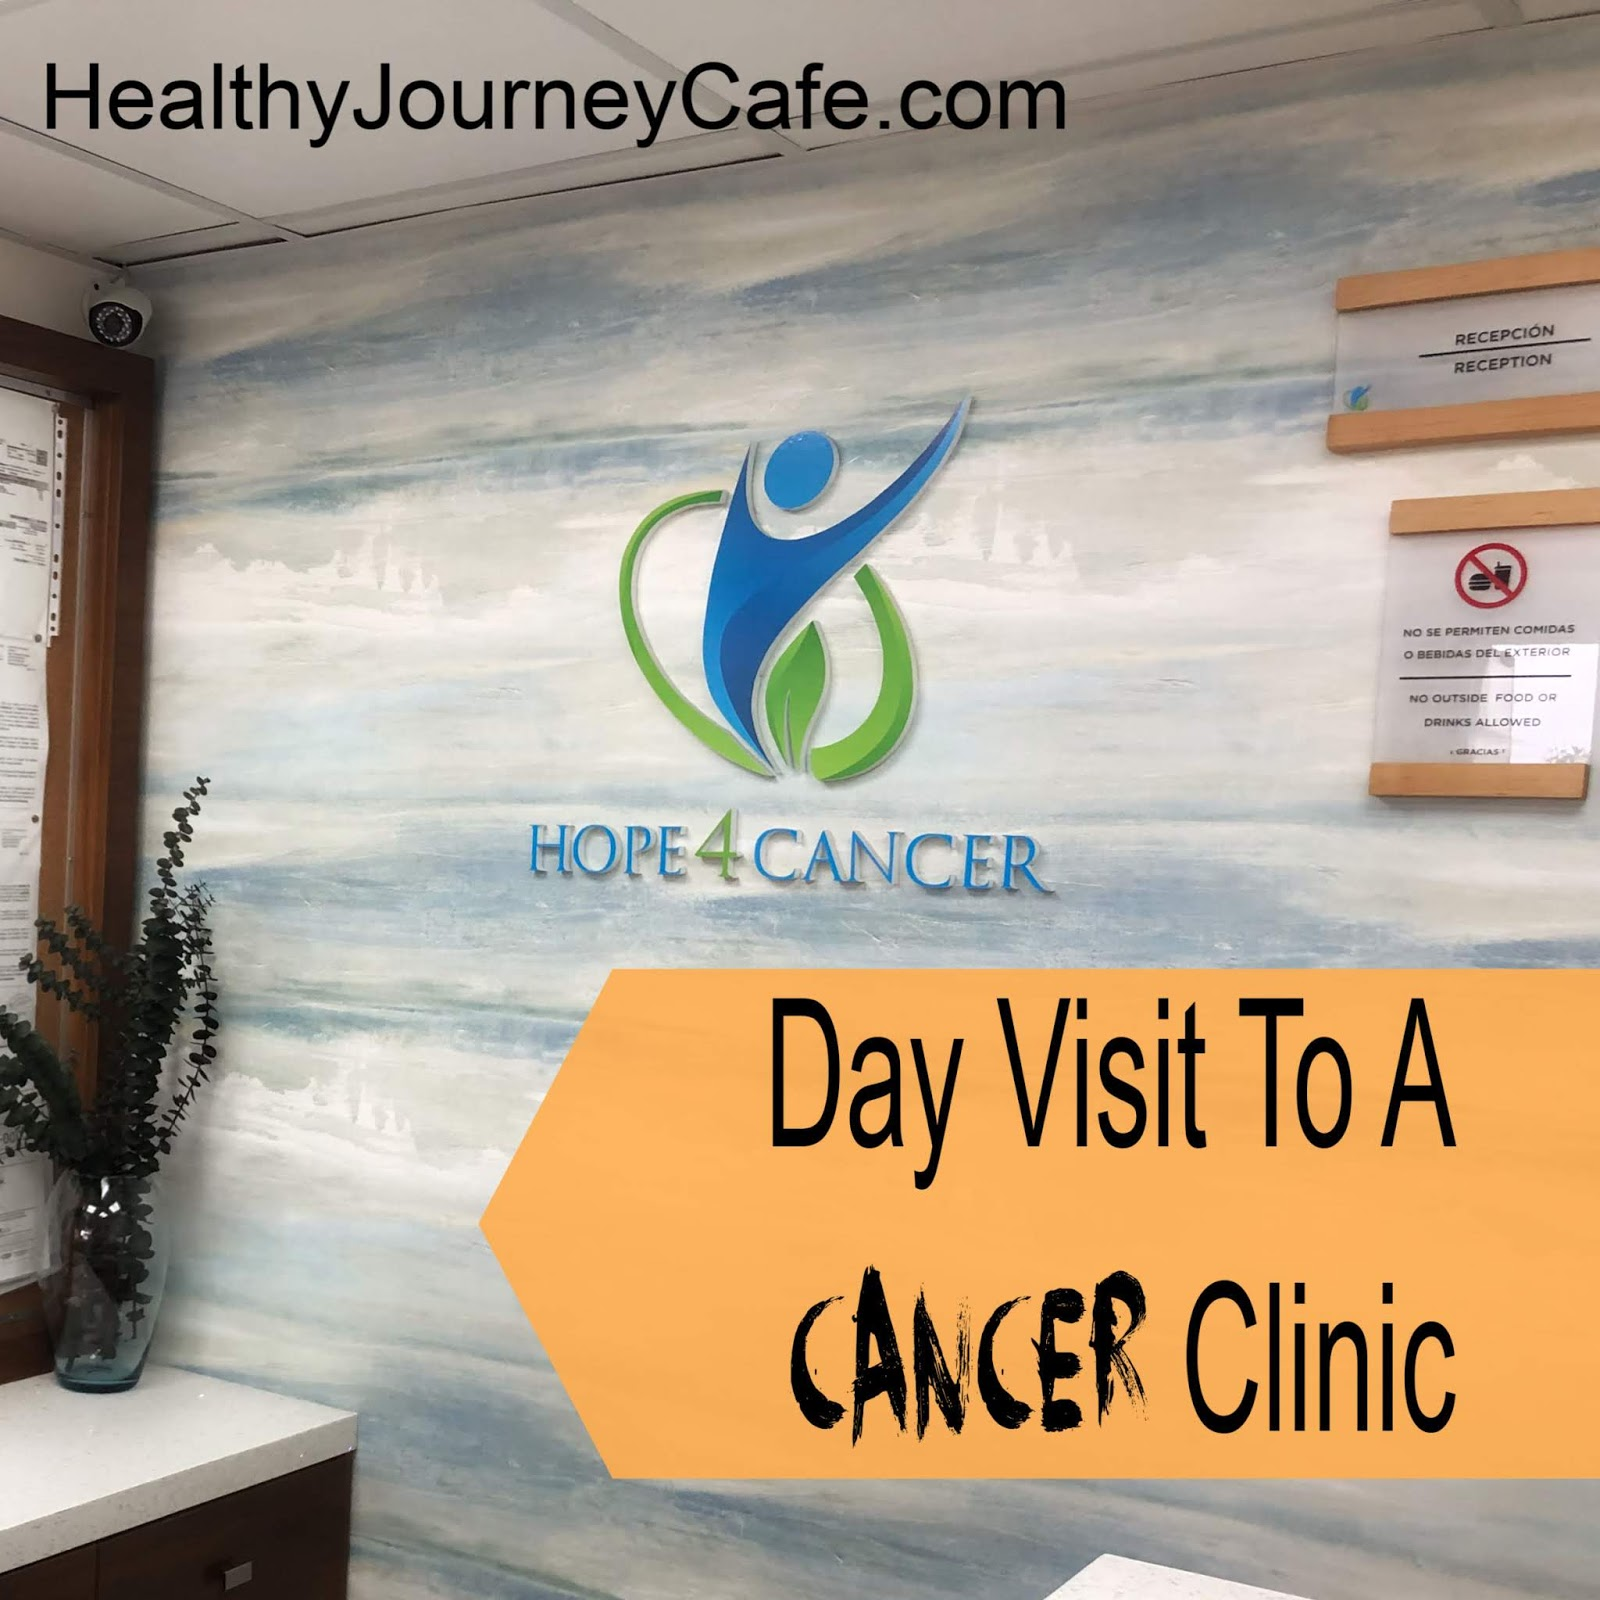 Day Visit To A Cancer Clinic Healthy Journey Cafe